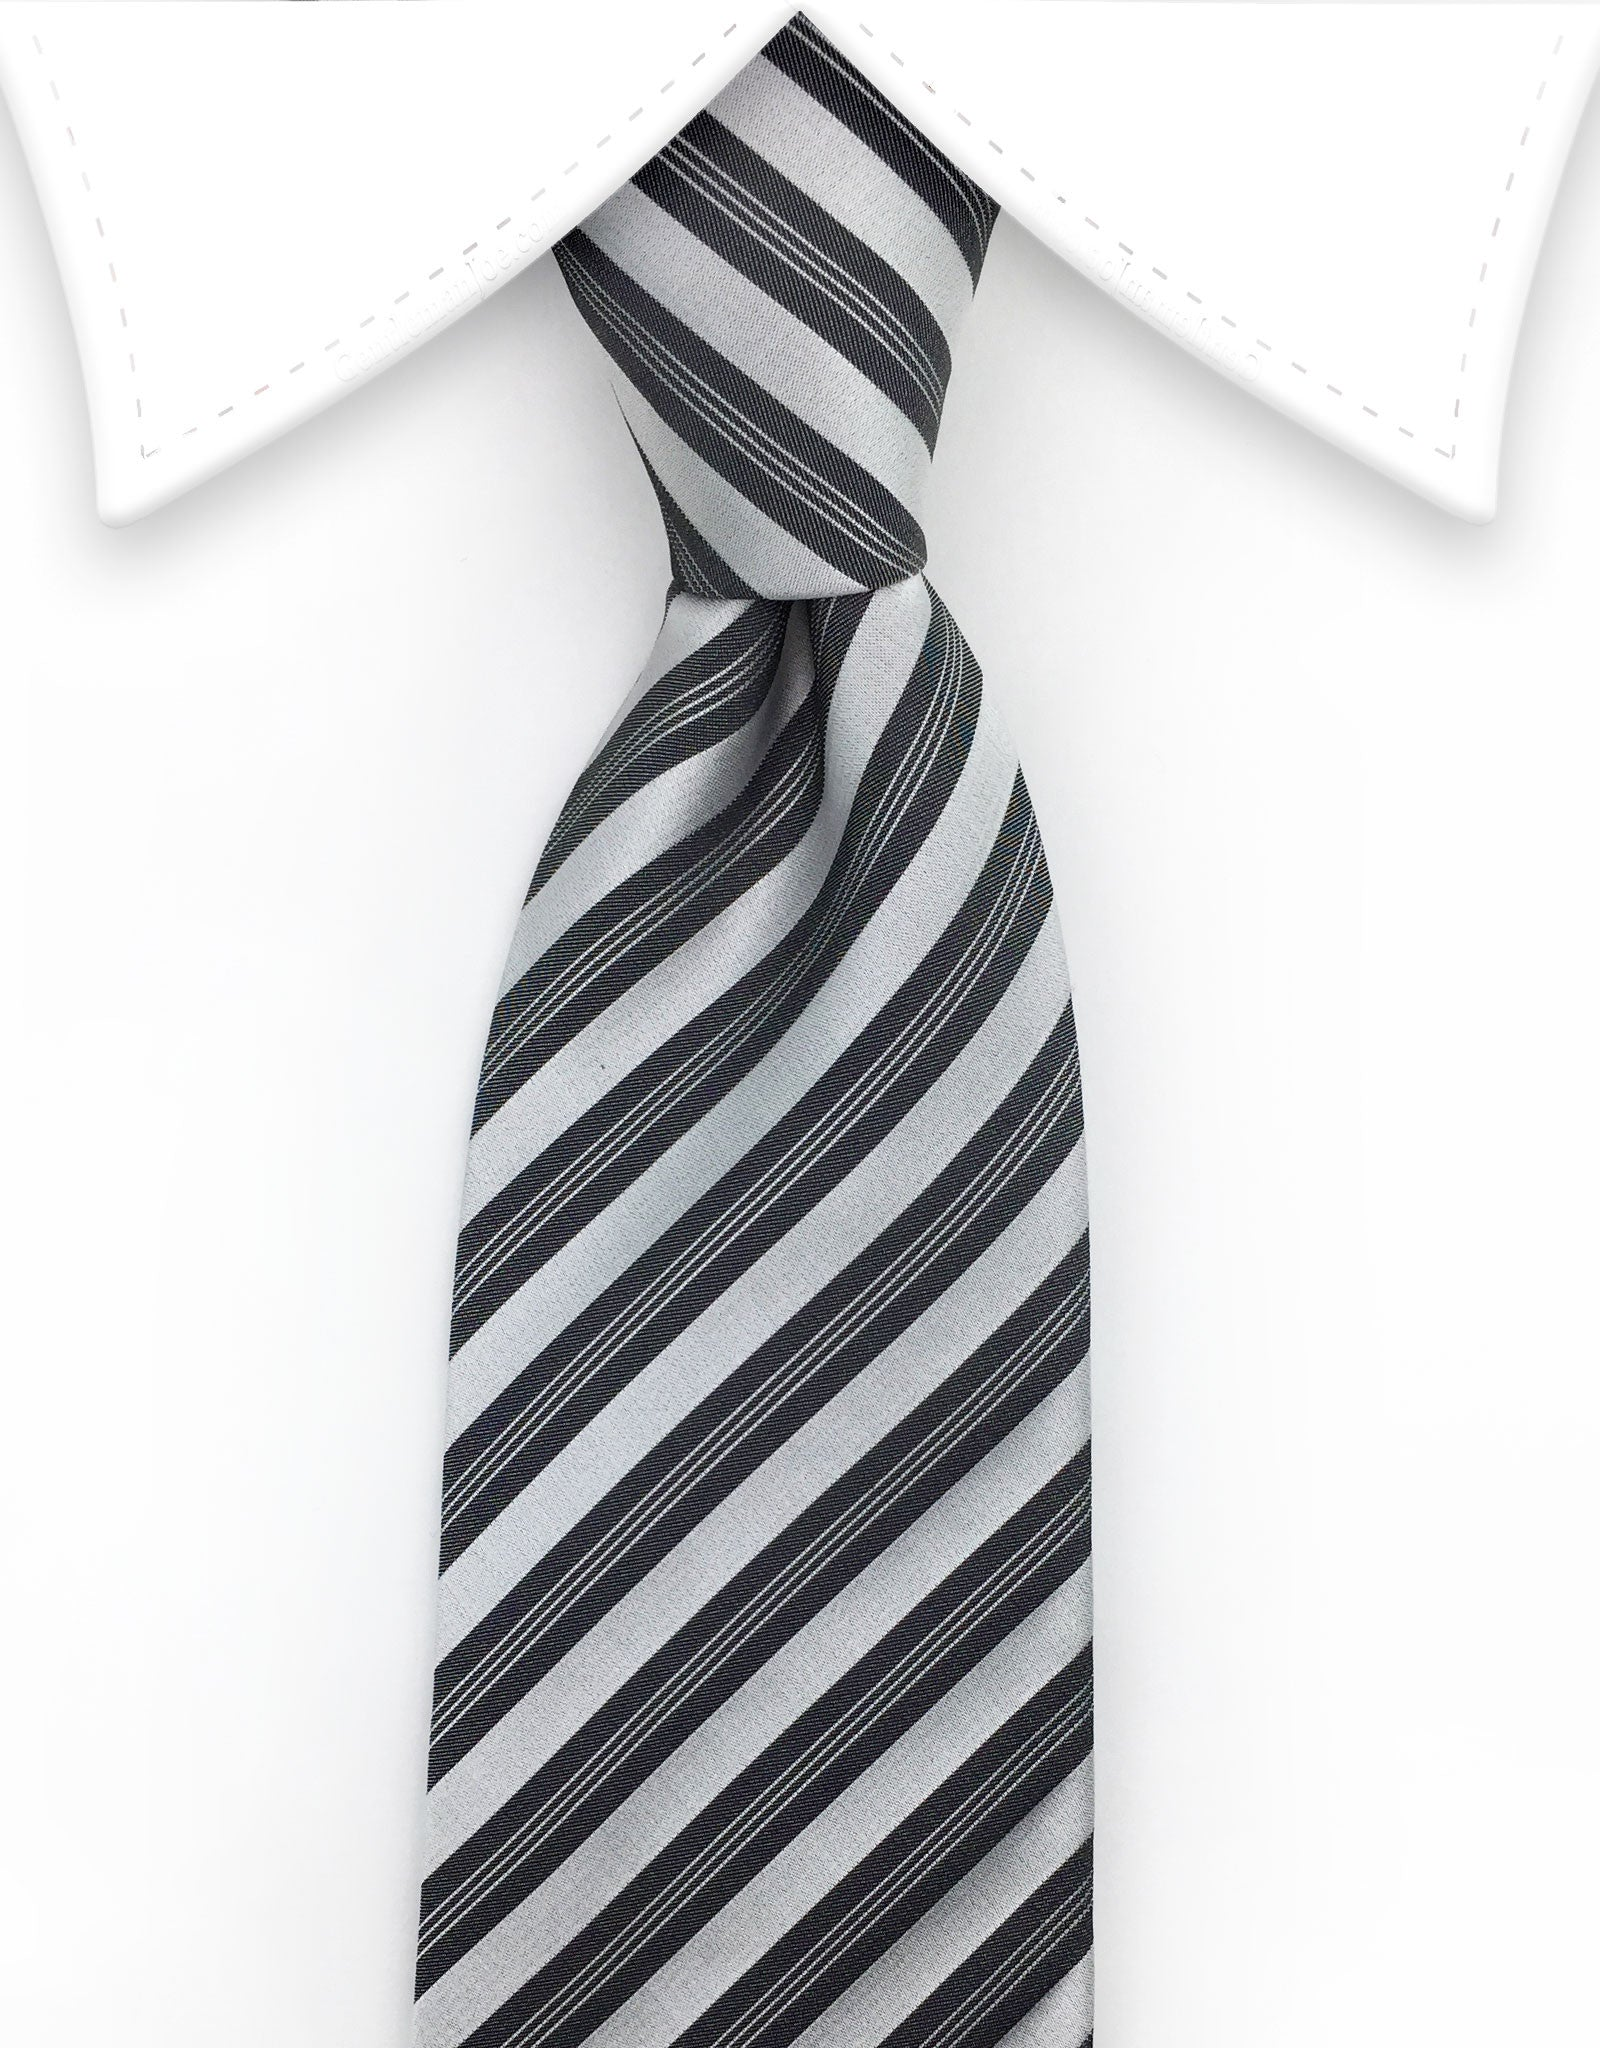 Silver Charcoal Striped Necktie